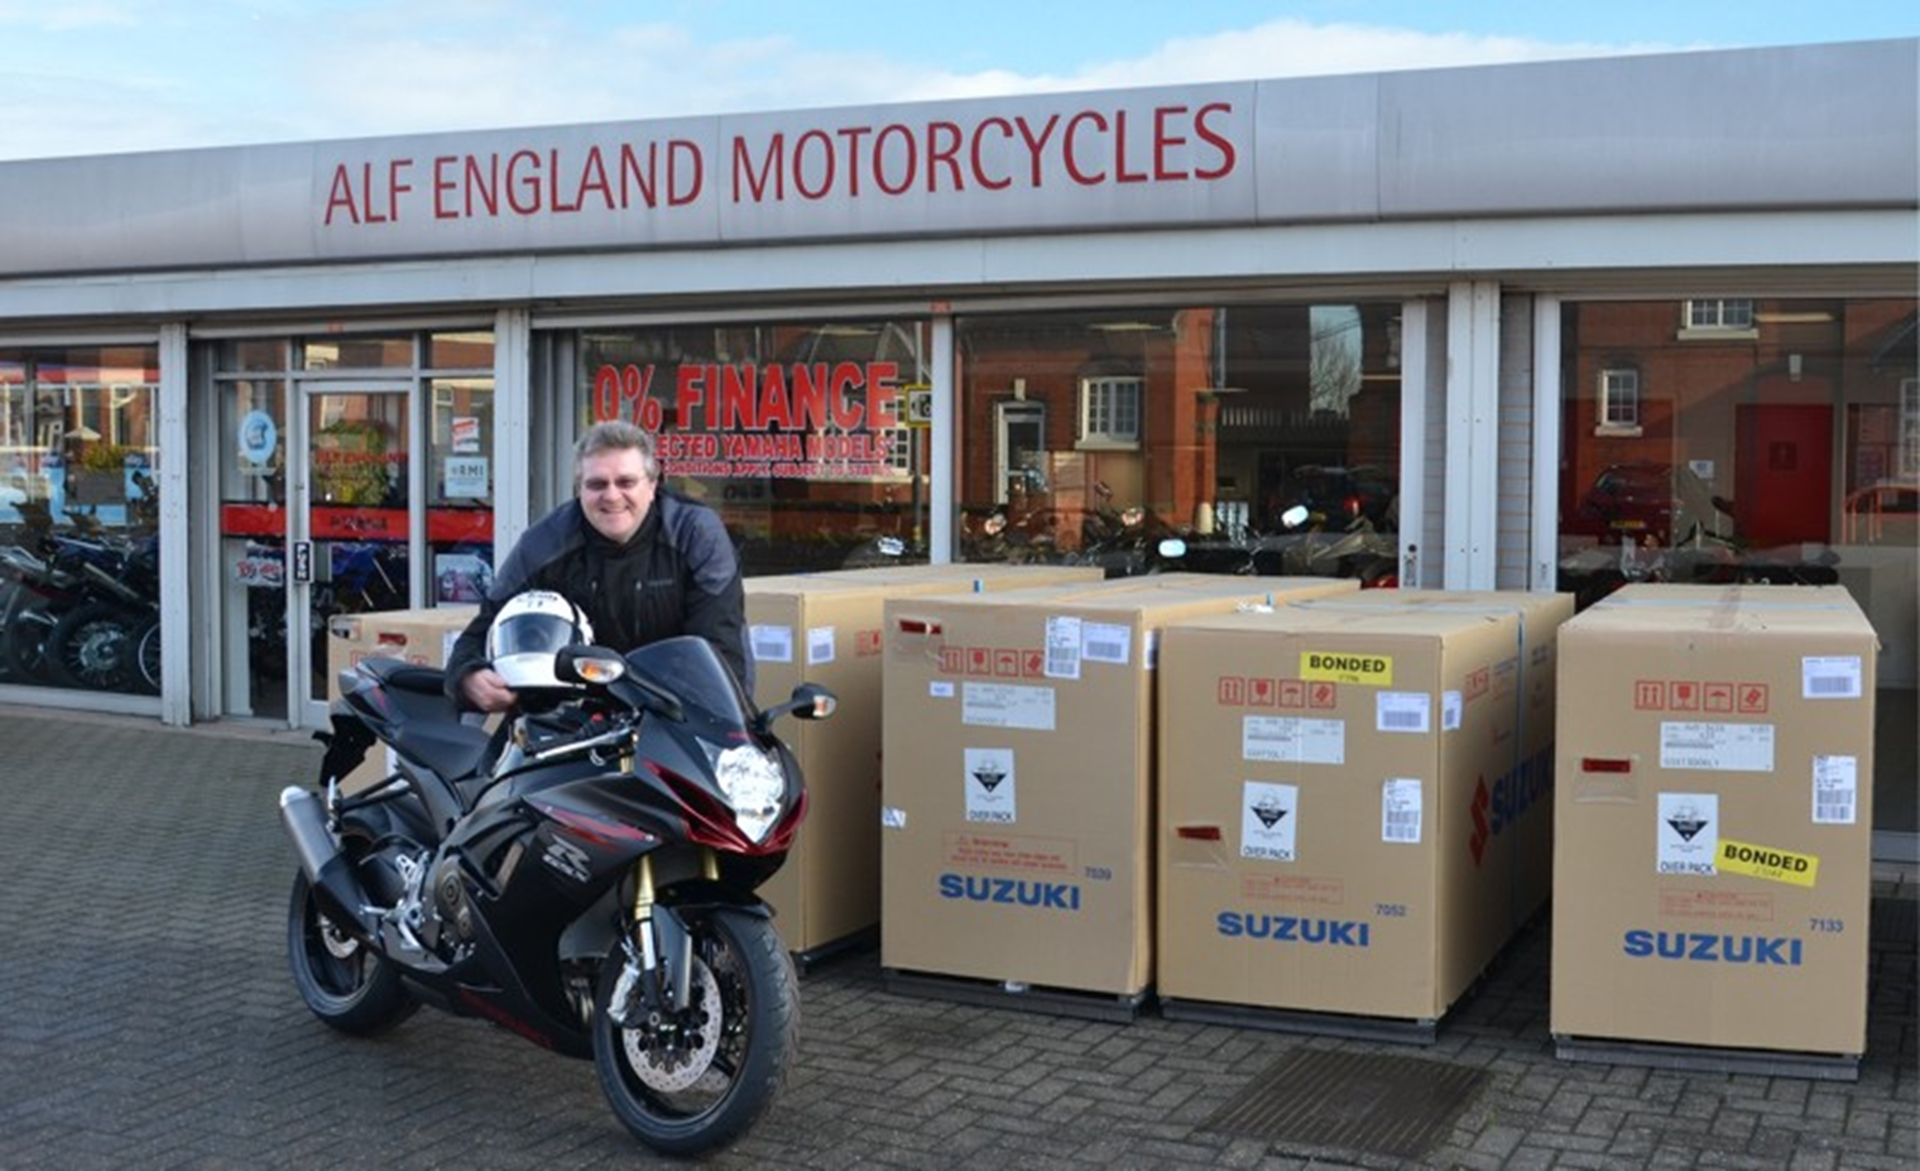 Martin Cole of Alf England Motorcycles with the latest GSX-R750